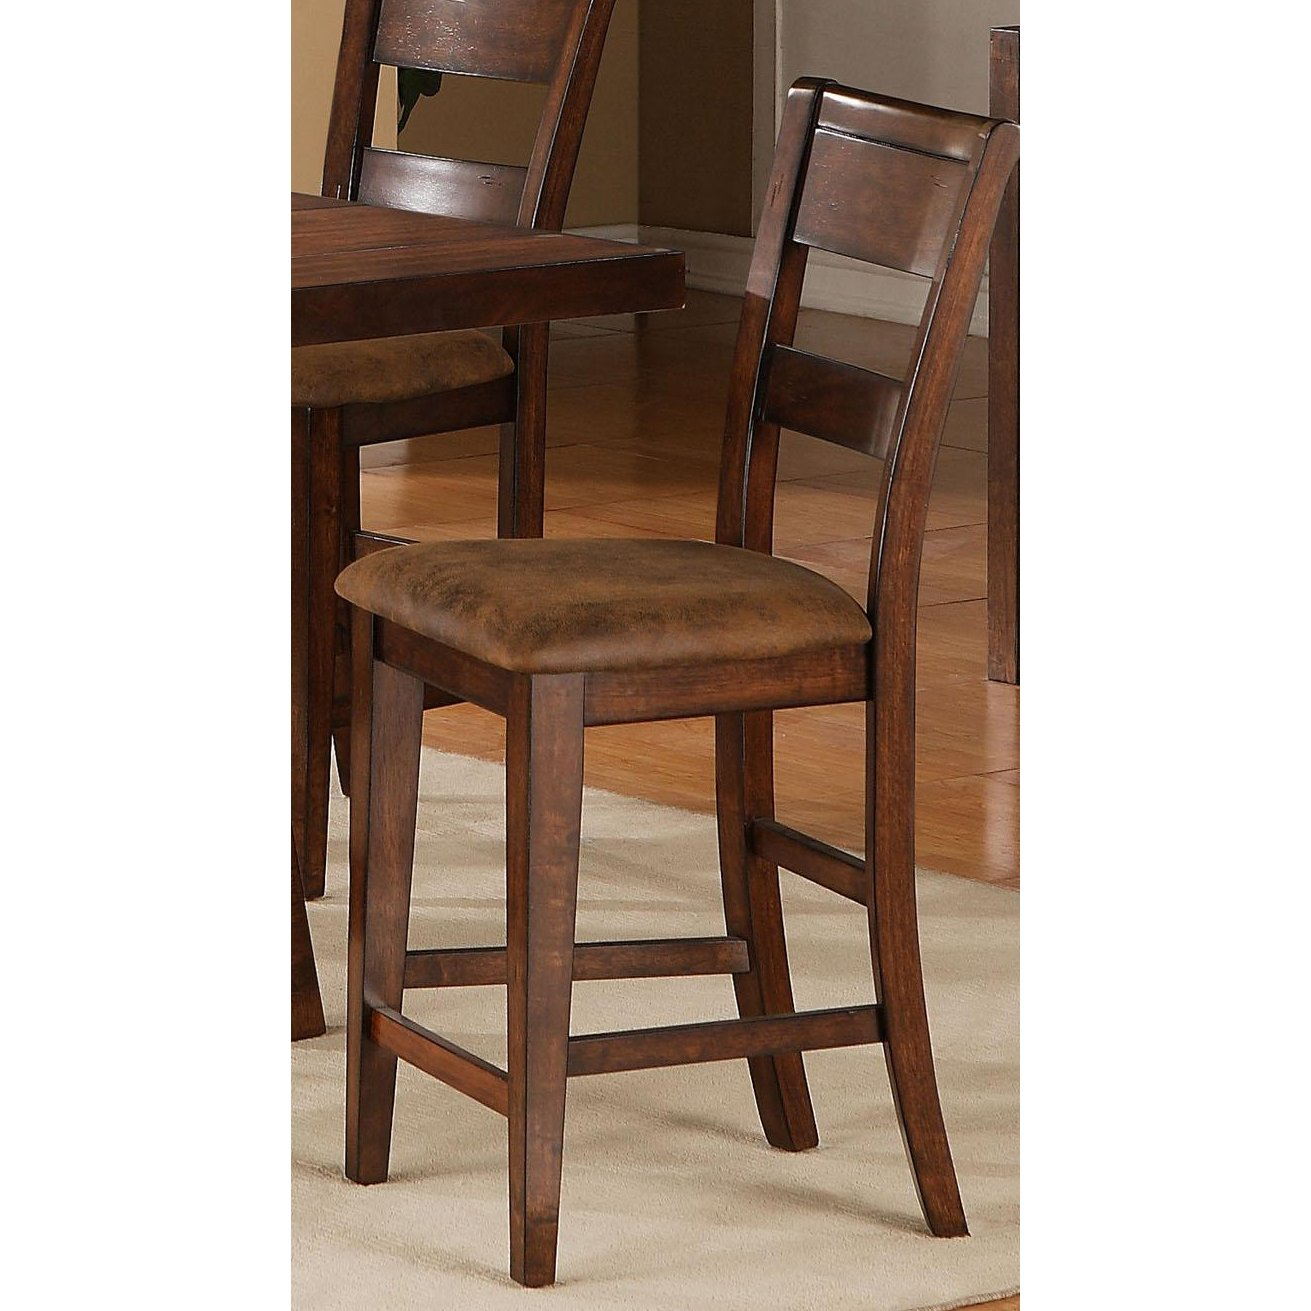 Counter Height Chairs With Arms Burnished Brown 24 Inch Counter Height Stool Veca